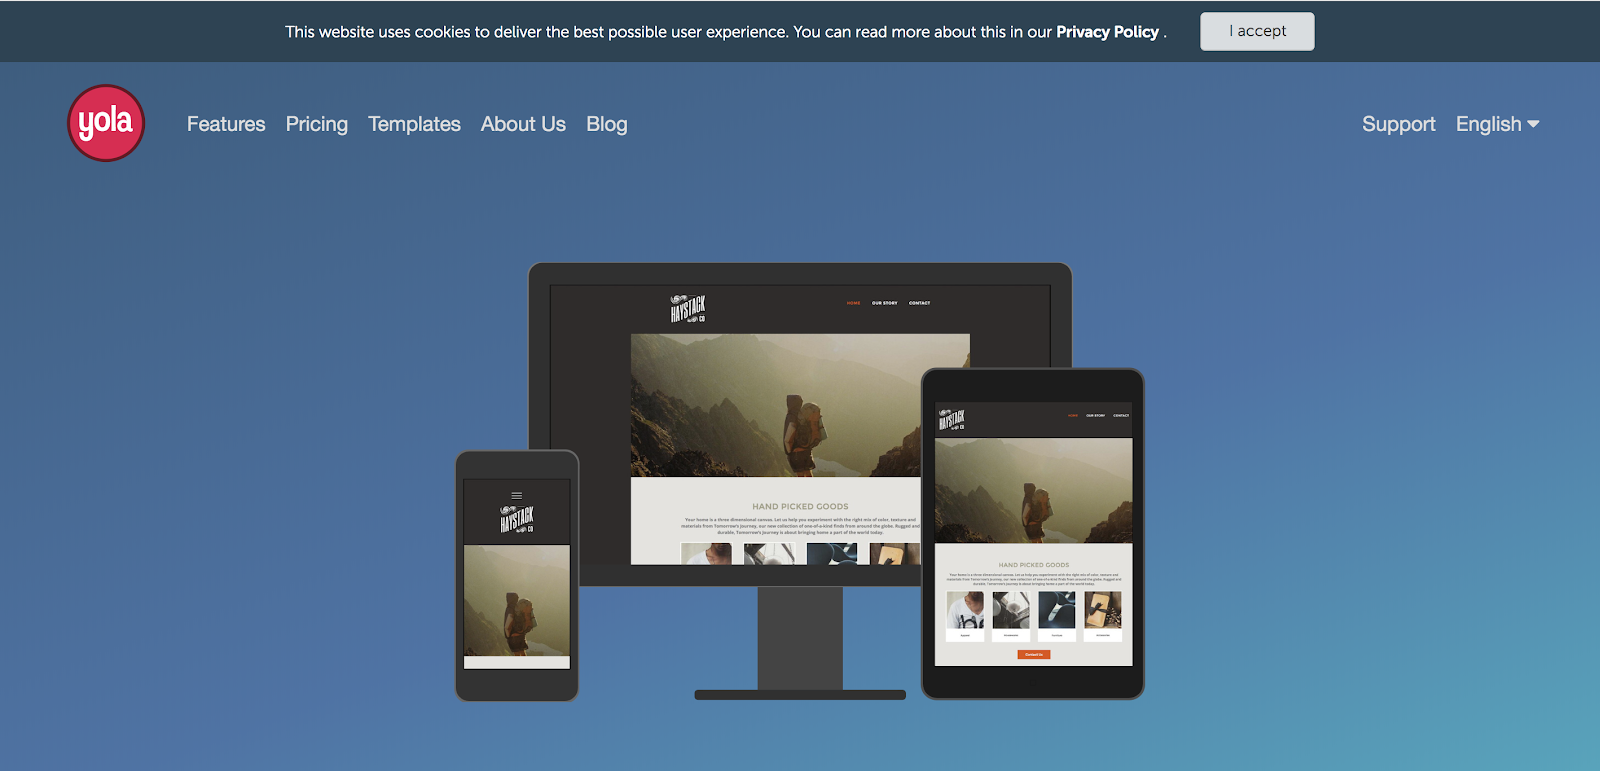 Yola Free Blogging Site Homepage Screenshot and Example